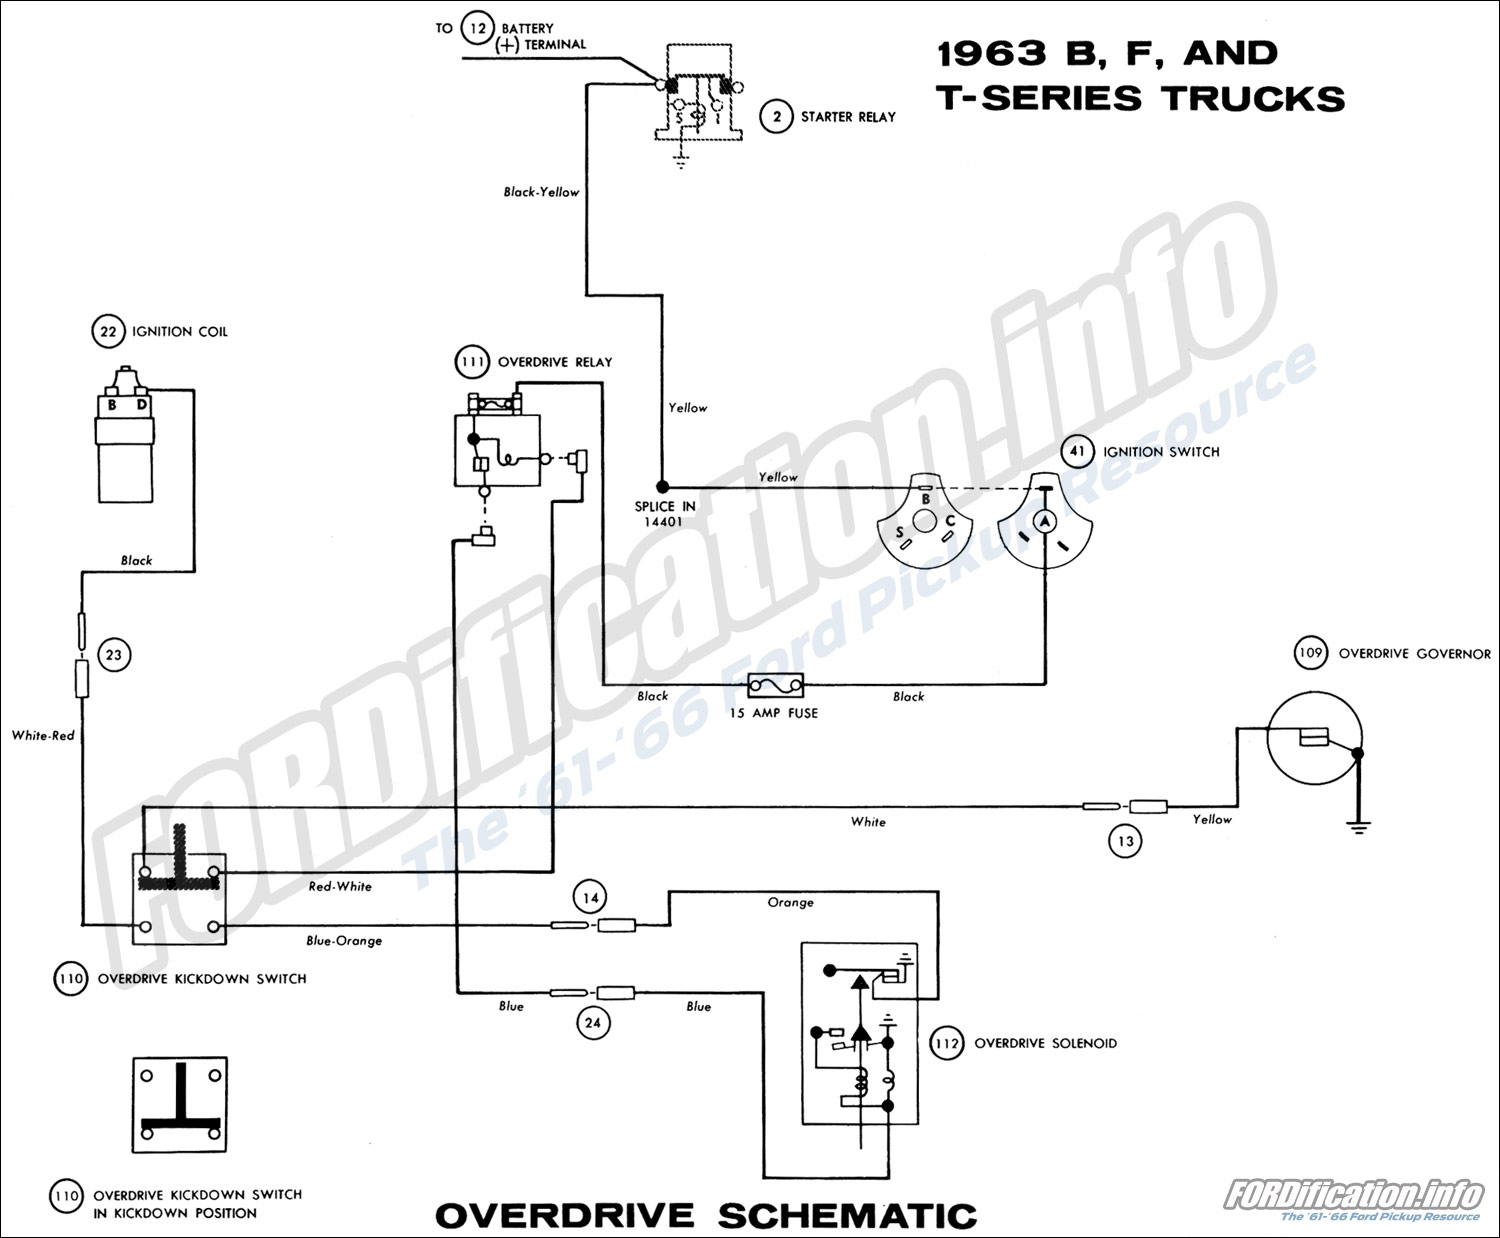 1963 Ford Truck Wiring Diagrams - Fordification Info